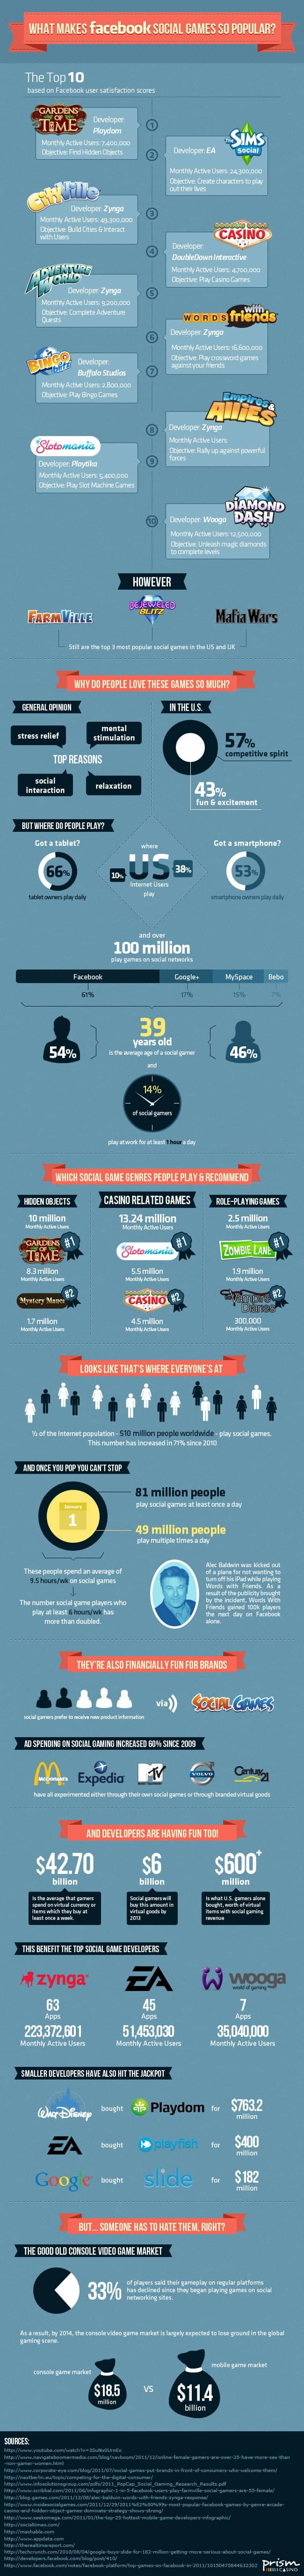 Facebook Social Games Infographic